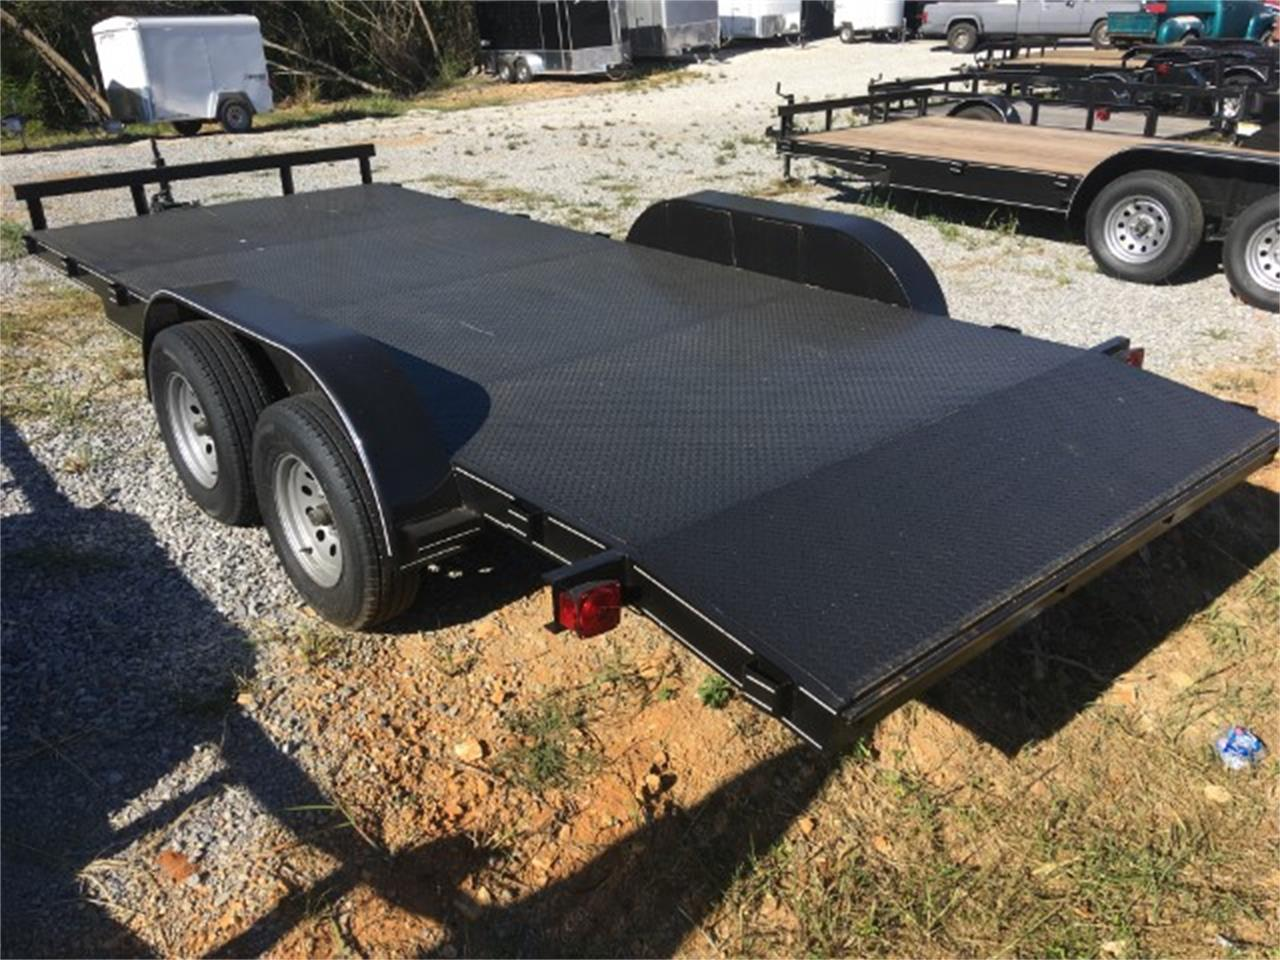 Large Picture of 2017 Trailer located in Tennessee - $2,600.00 Offered by Bobby's Car Care - MEUC